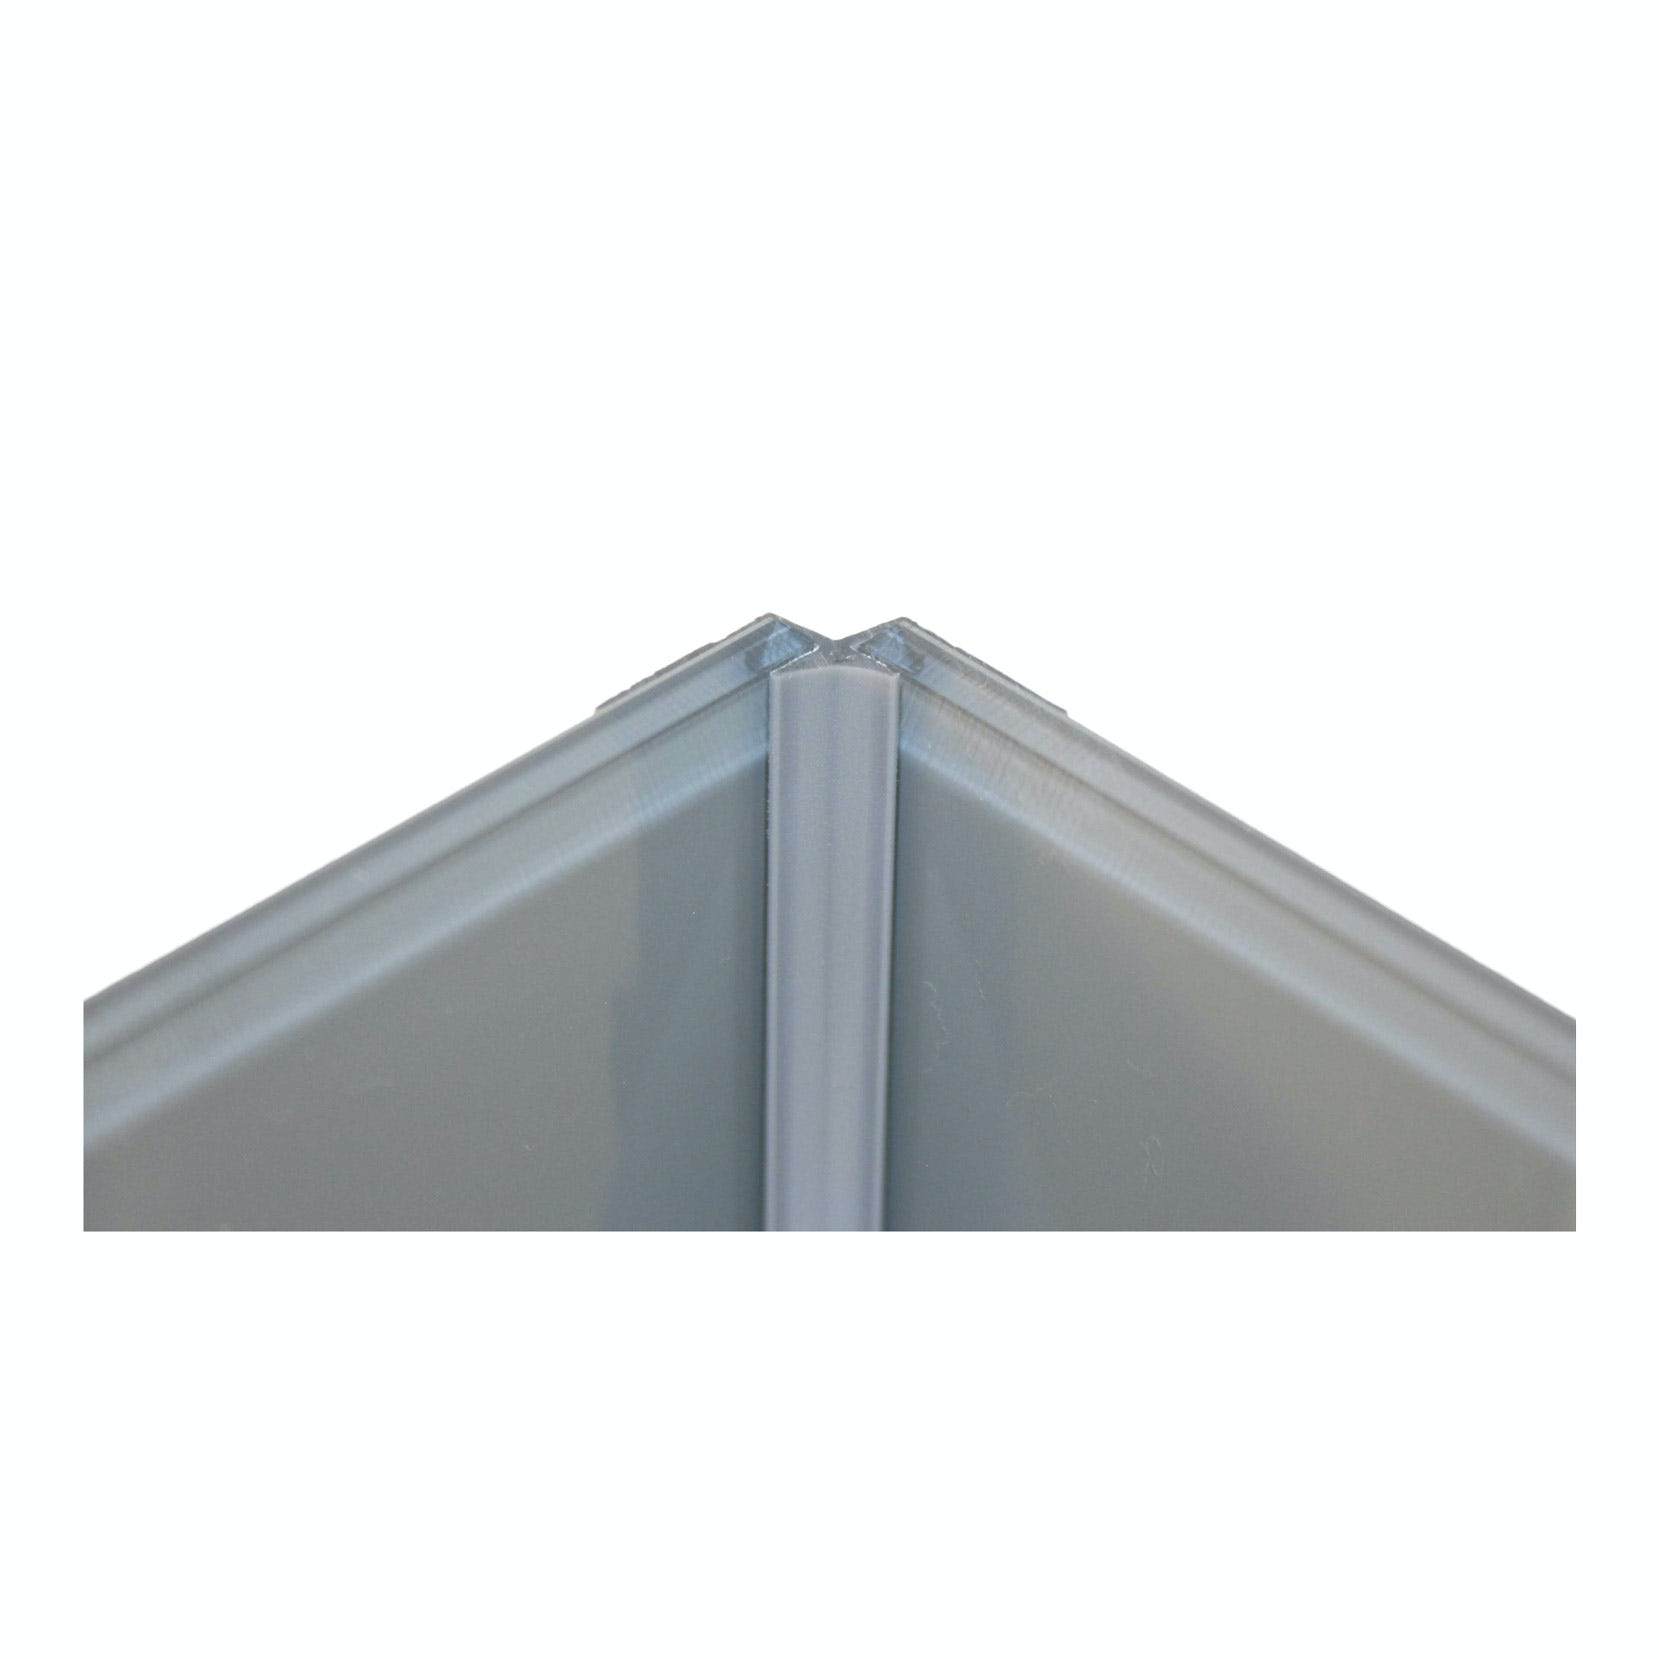 Zenolite plus matt ash colour matched internal corner joint 250mm